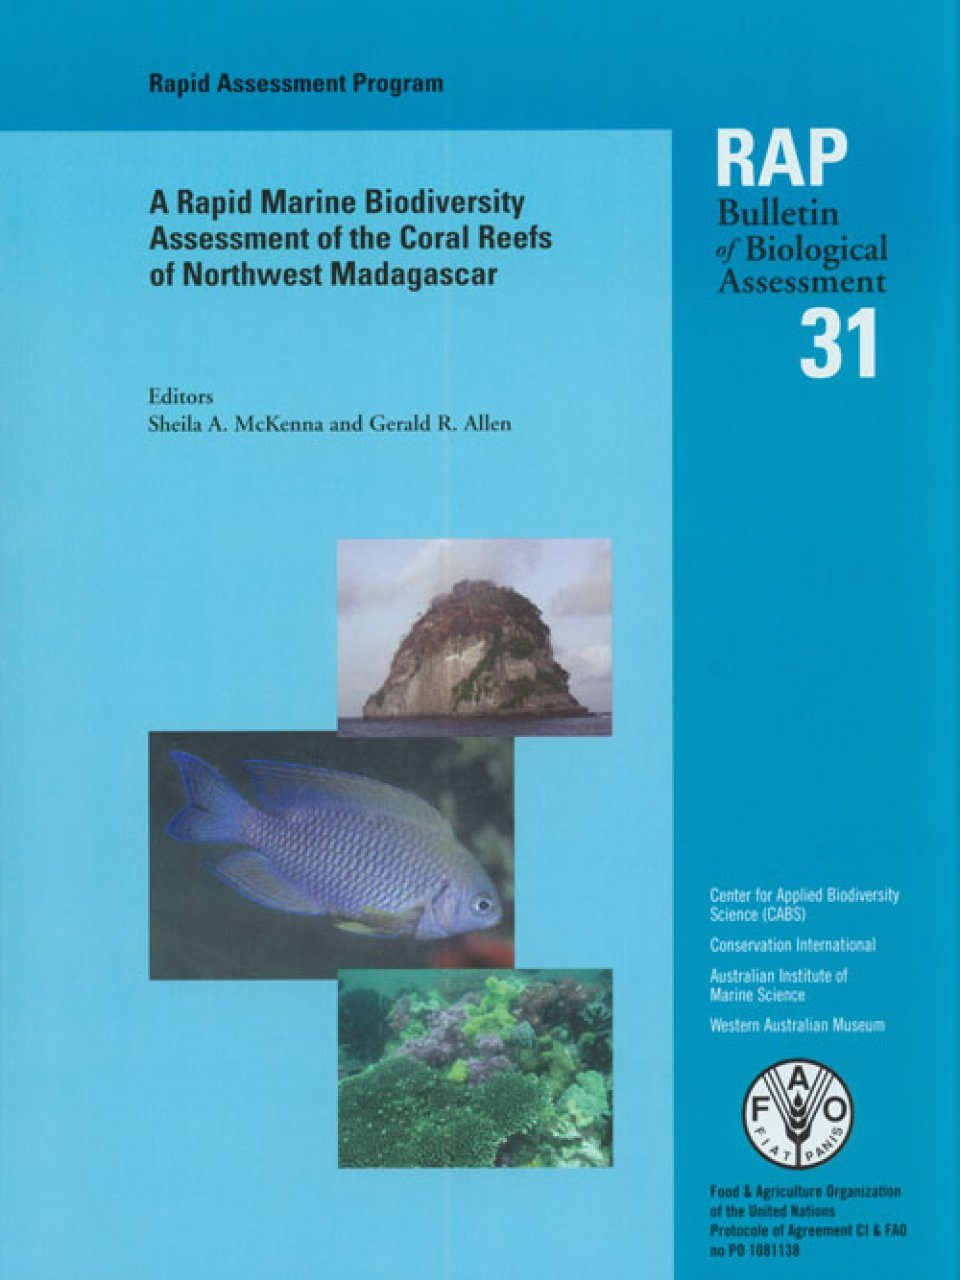 A Rapid Marine Biodiversity Assessment of the Coral Reefs of Northwest Madagascar